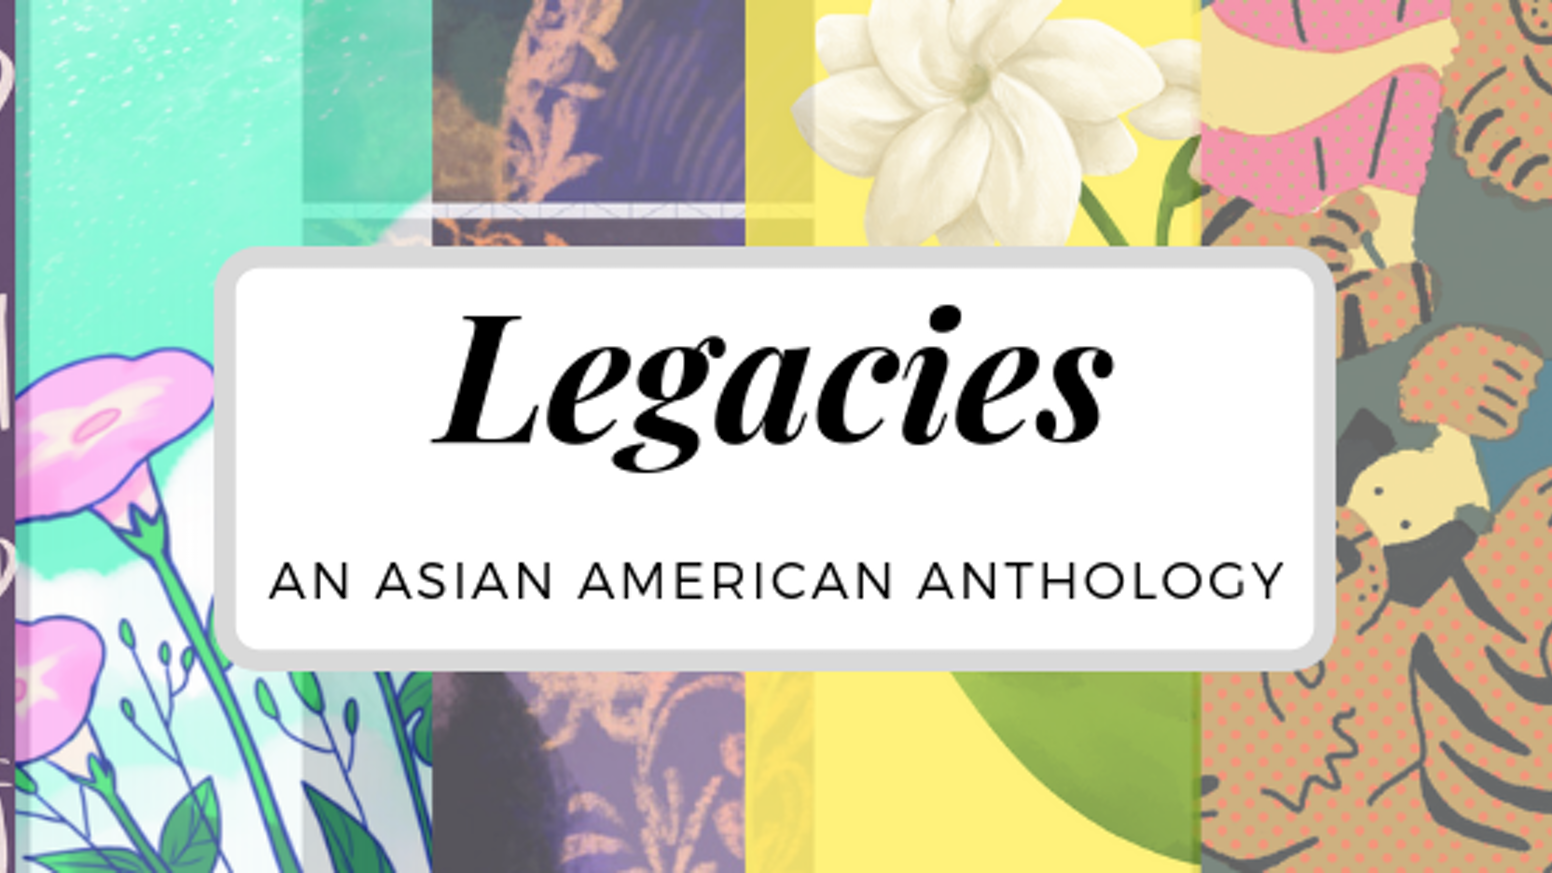 """Legacies"" is a 176 page anthology created by Asians in North America. We aim to capture in art and writing our legacies being As-Am!"